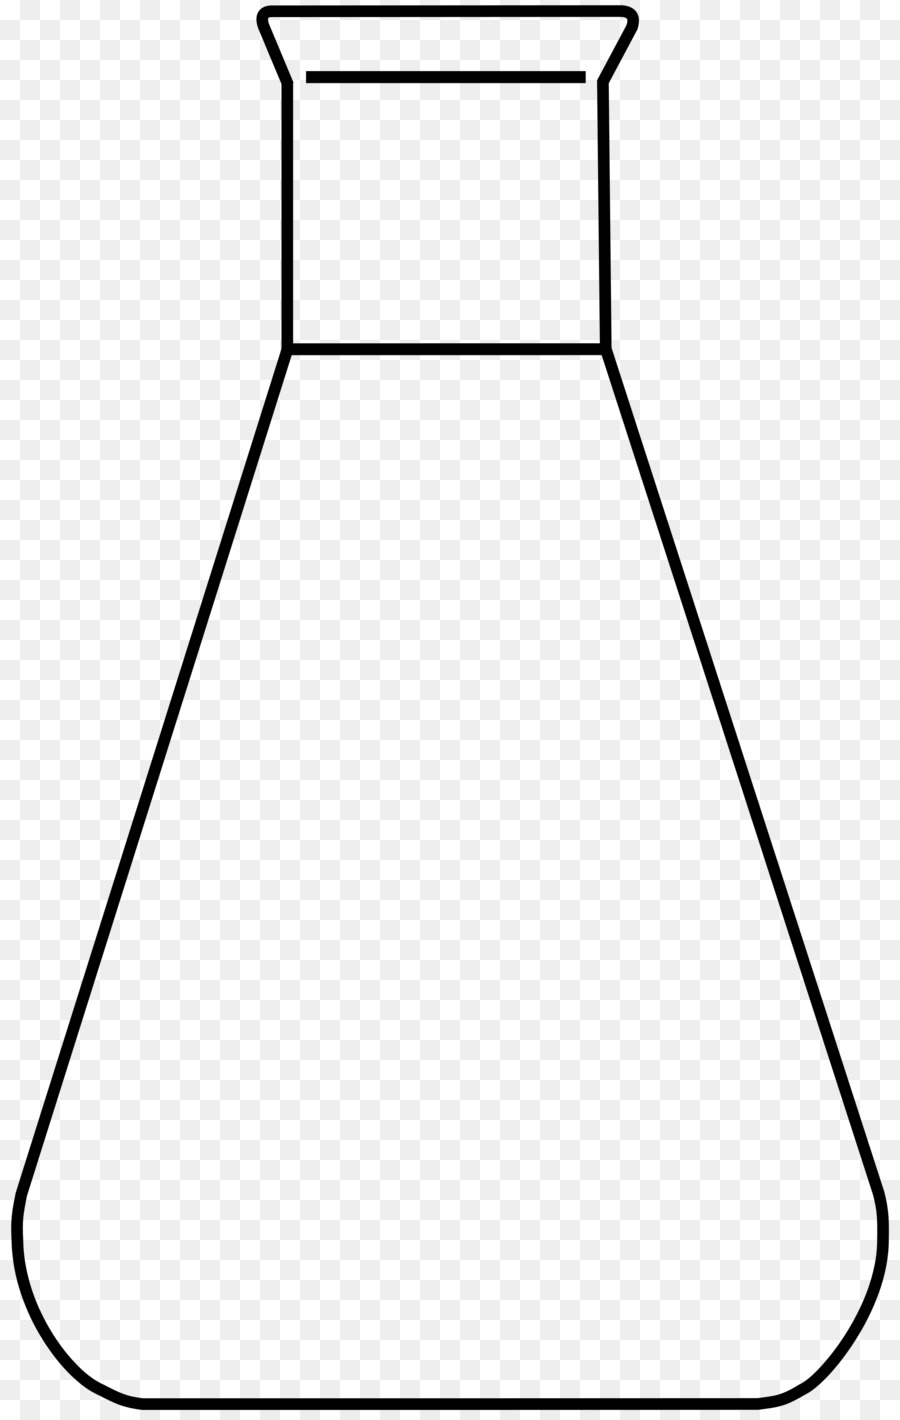 900x1420 Beaker, Drawing, White, Transparent Png Image Clipart Free Download